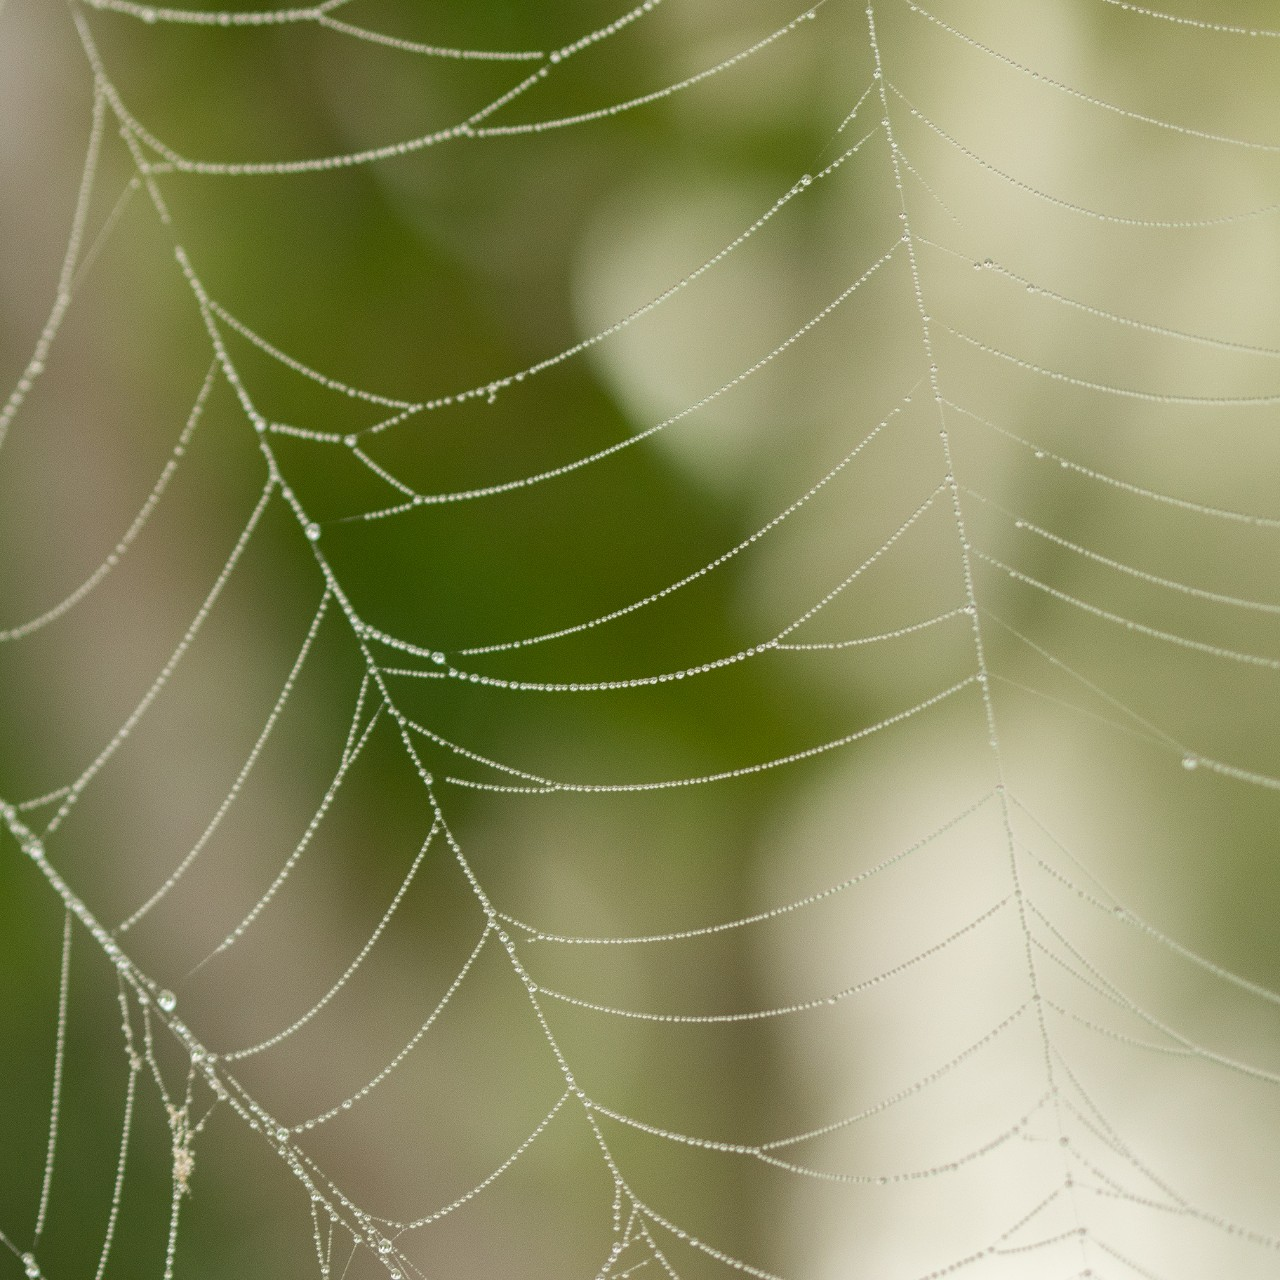 a spider web with water droplets